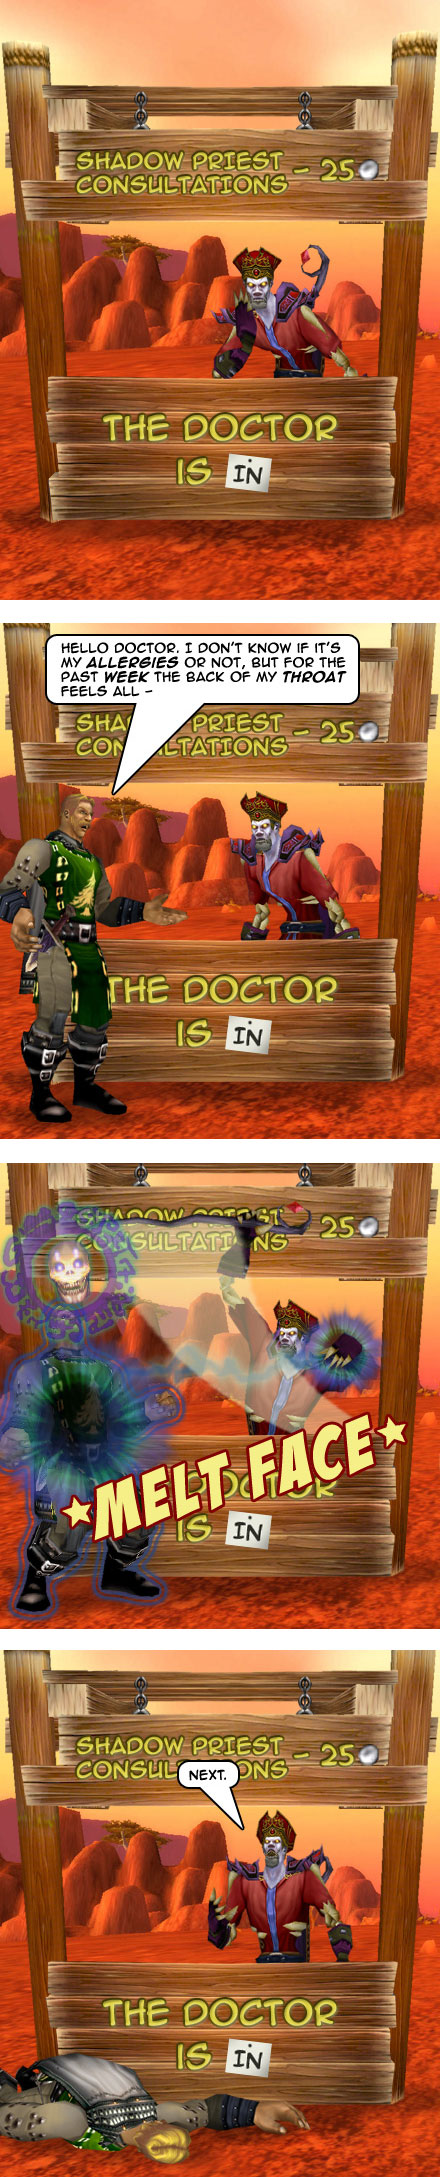 Part 7: Paging Dr. Priest, Paging Dr. Shadow Priest.